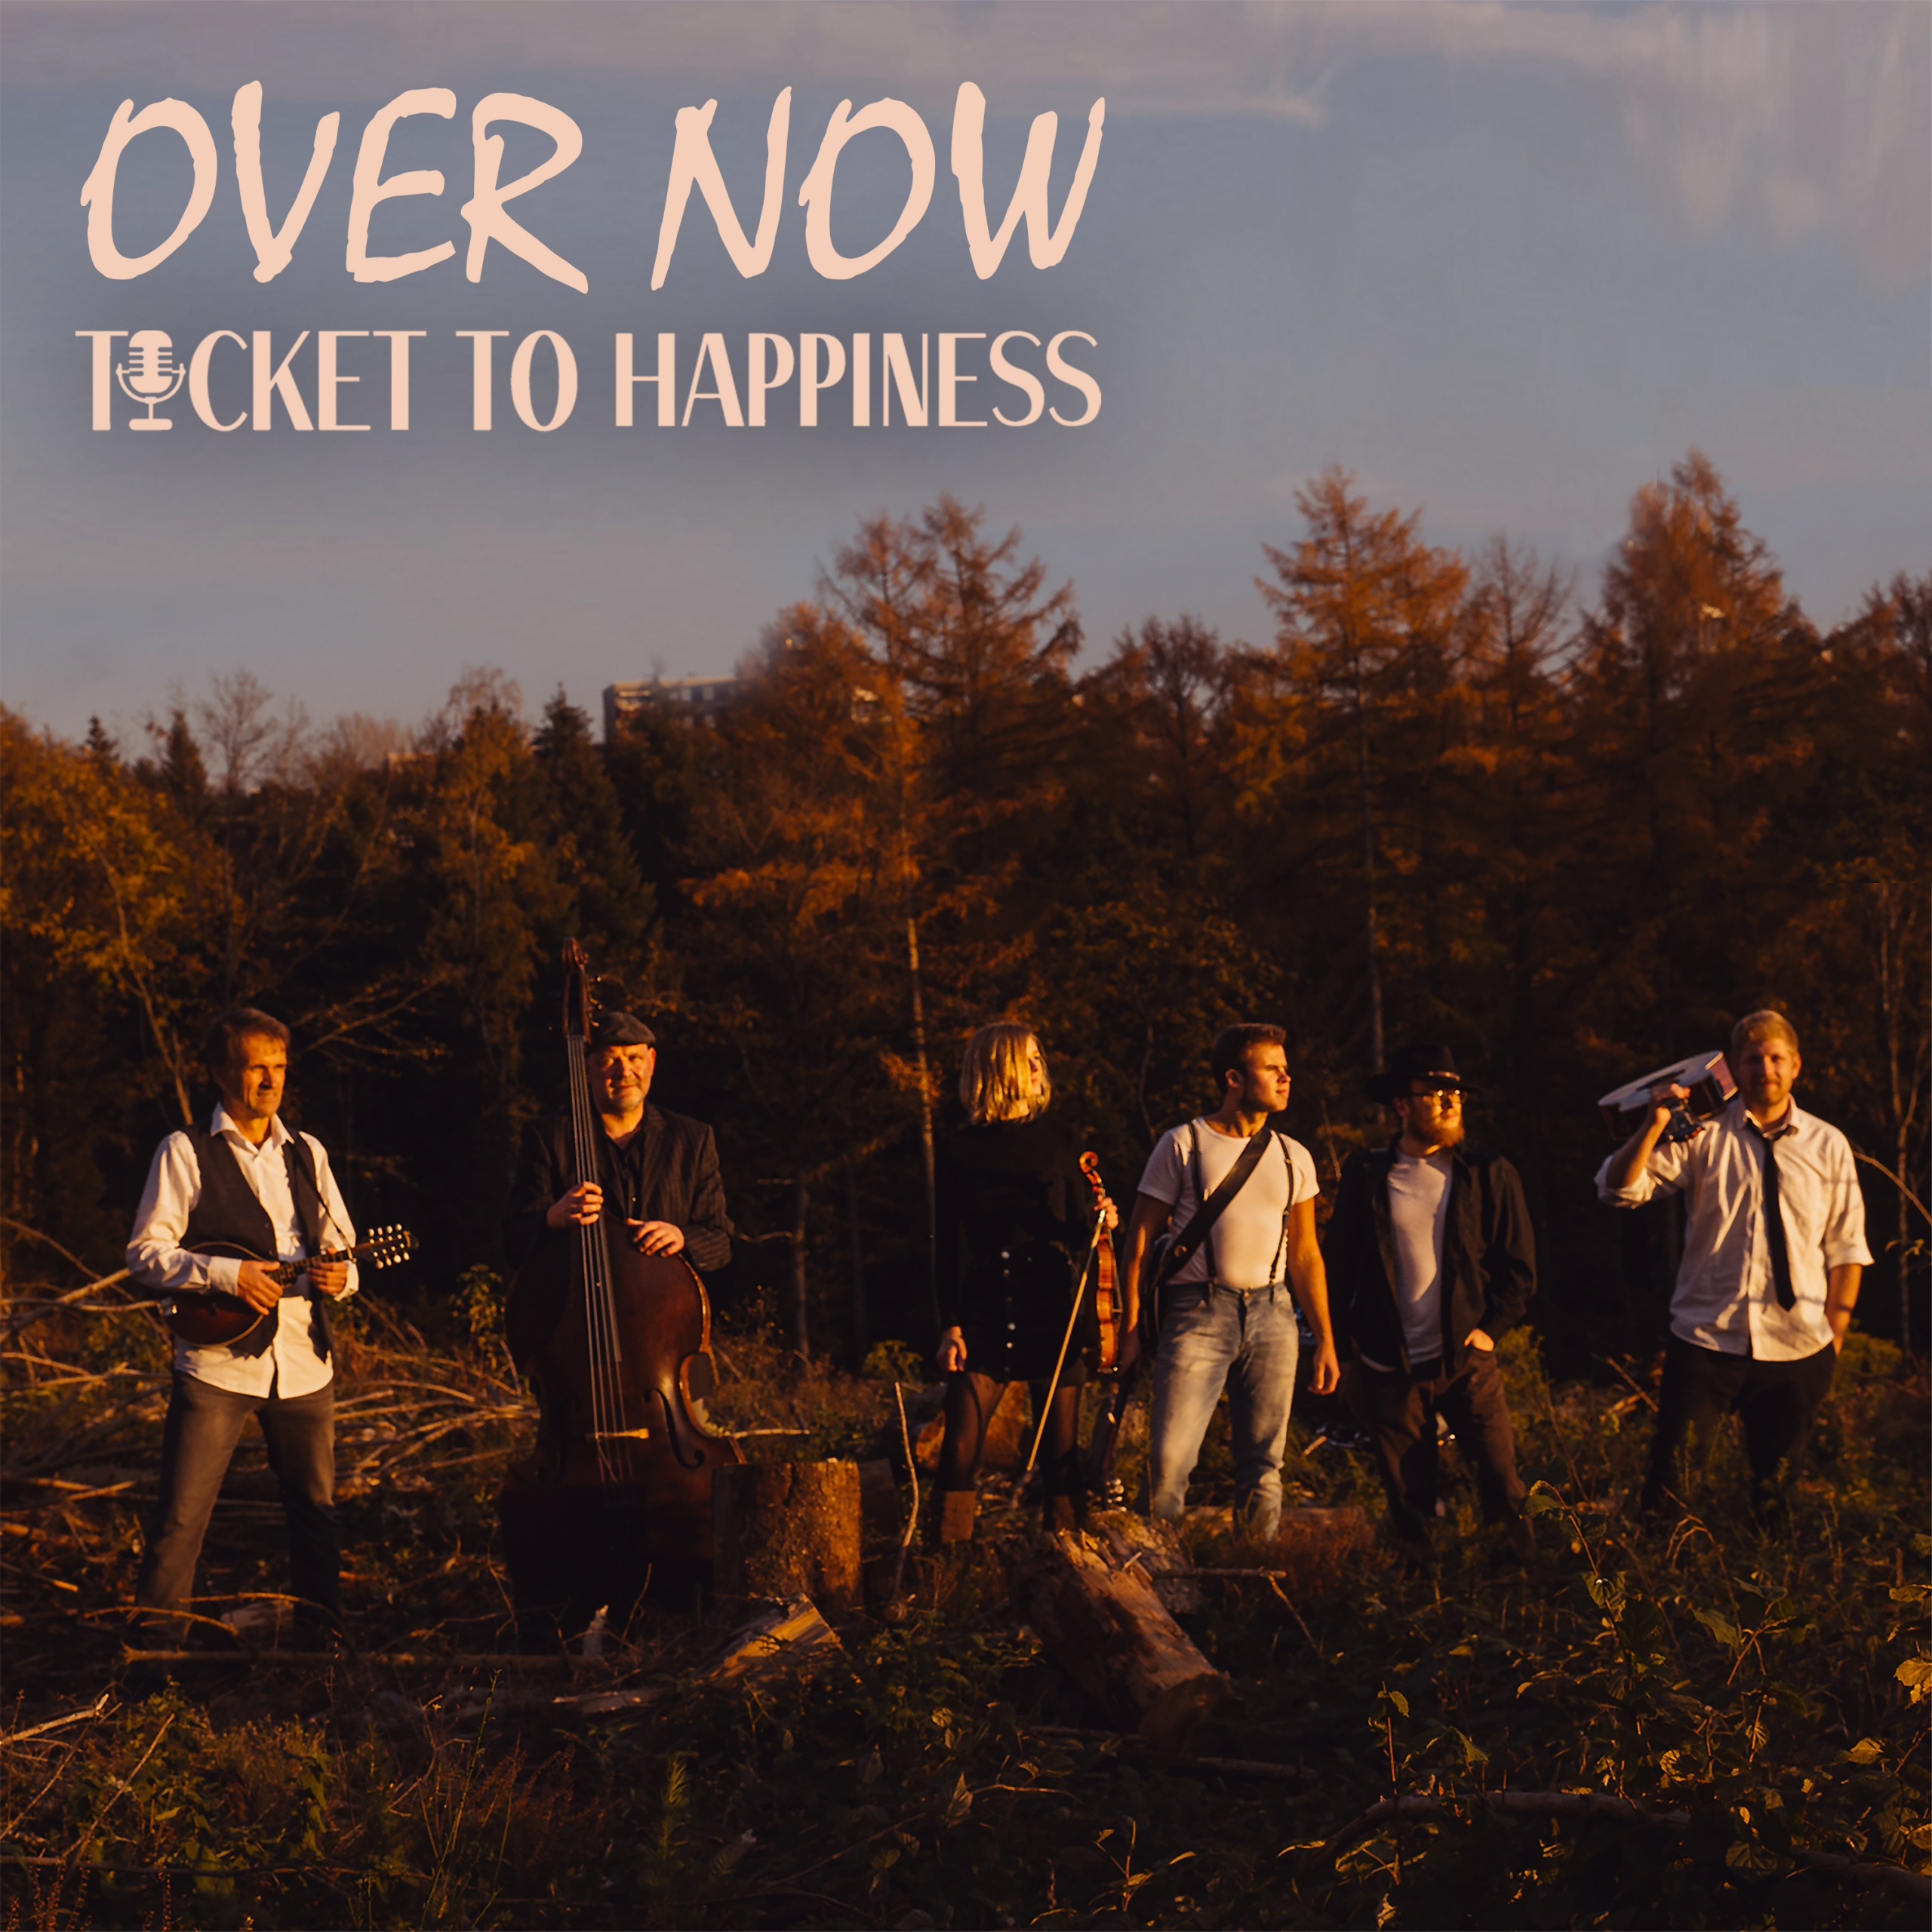 Over Now Cover - Ticket to Happiness - Single - Folk - Folk Rock - Folk Pop - Music - MP3 Download